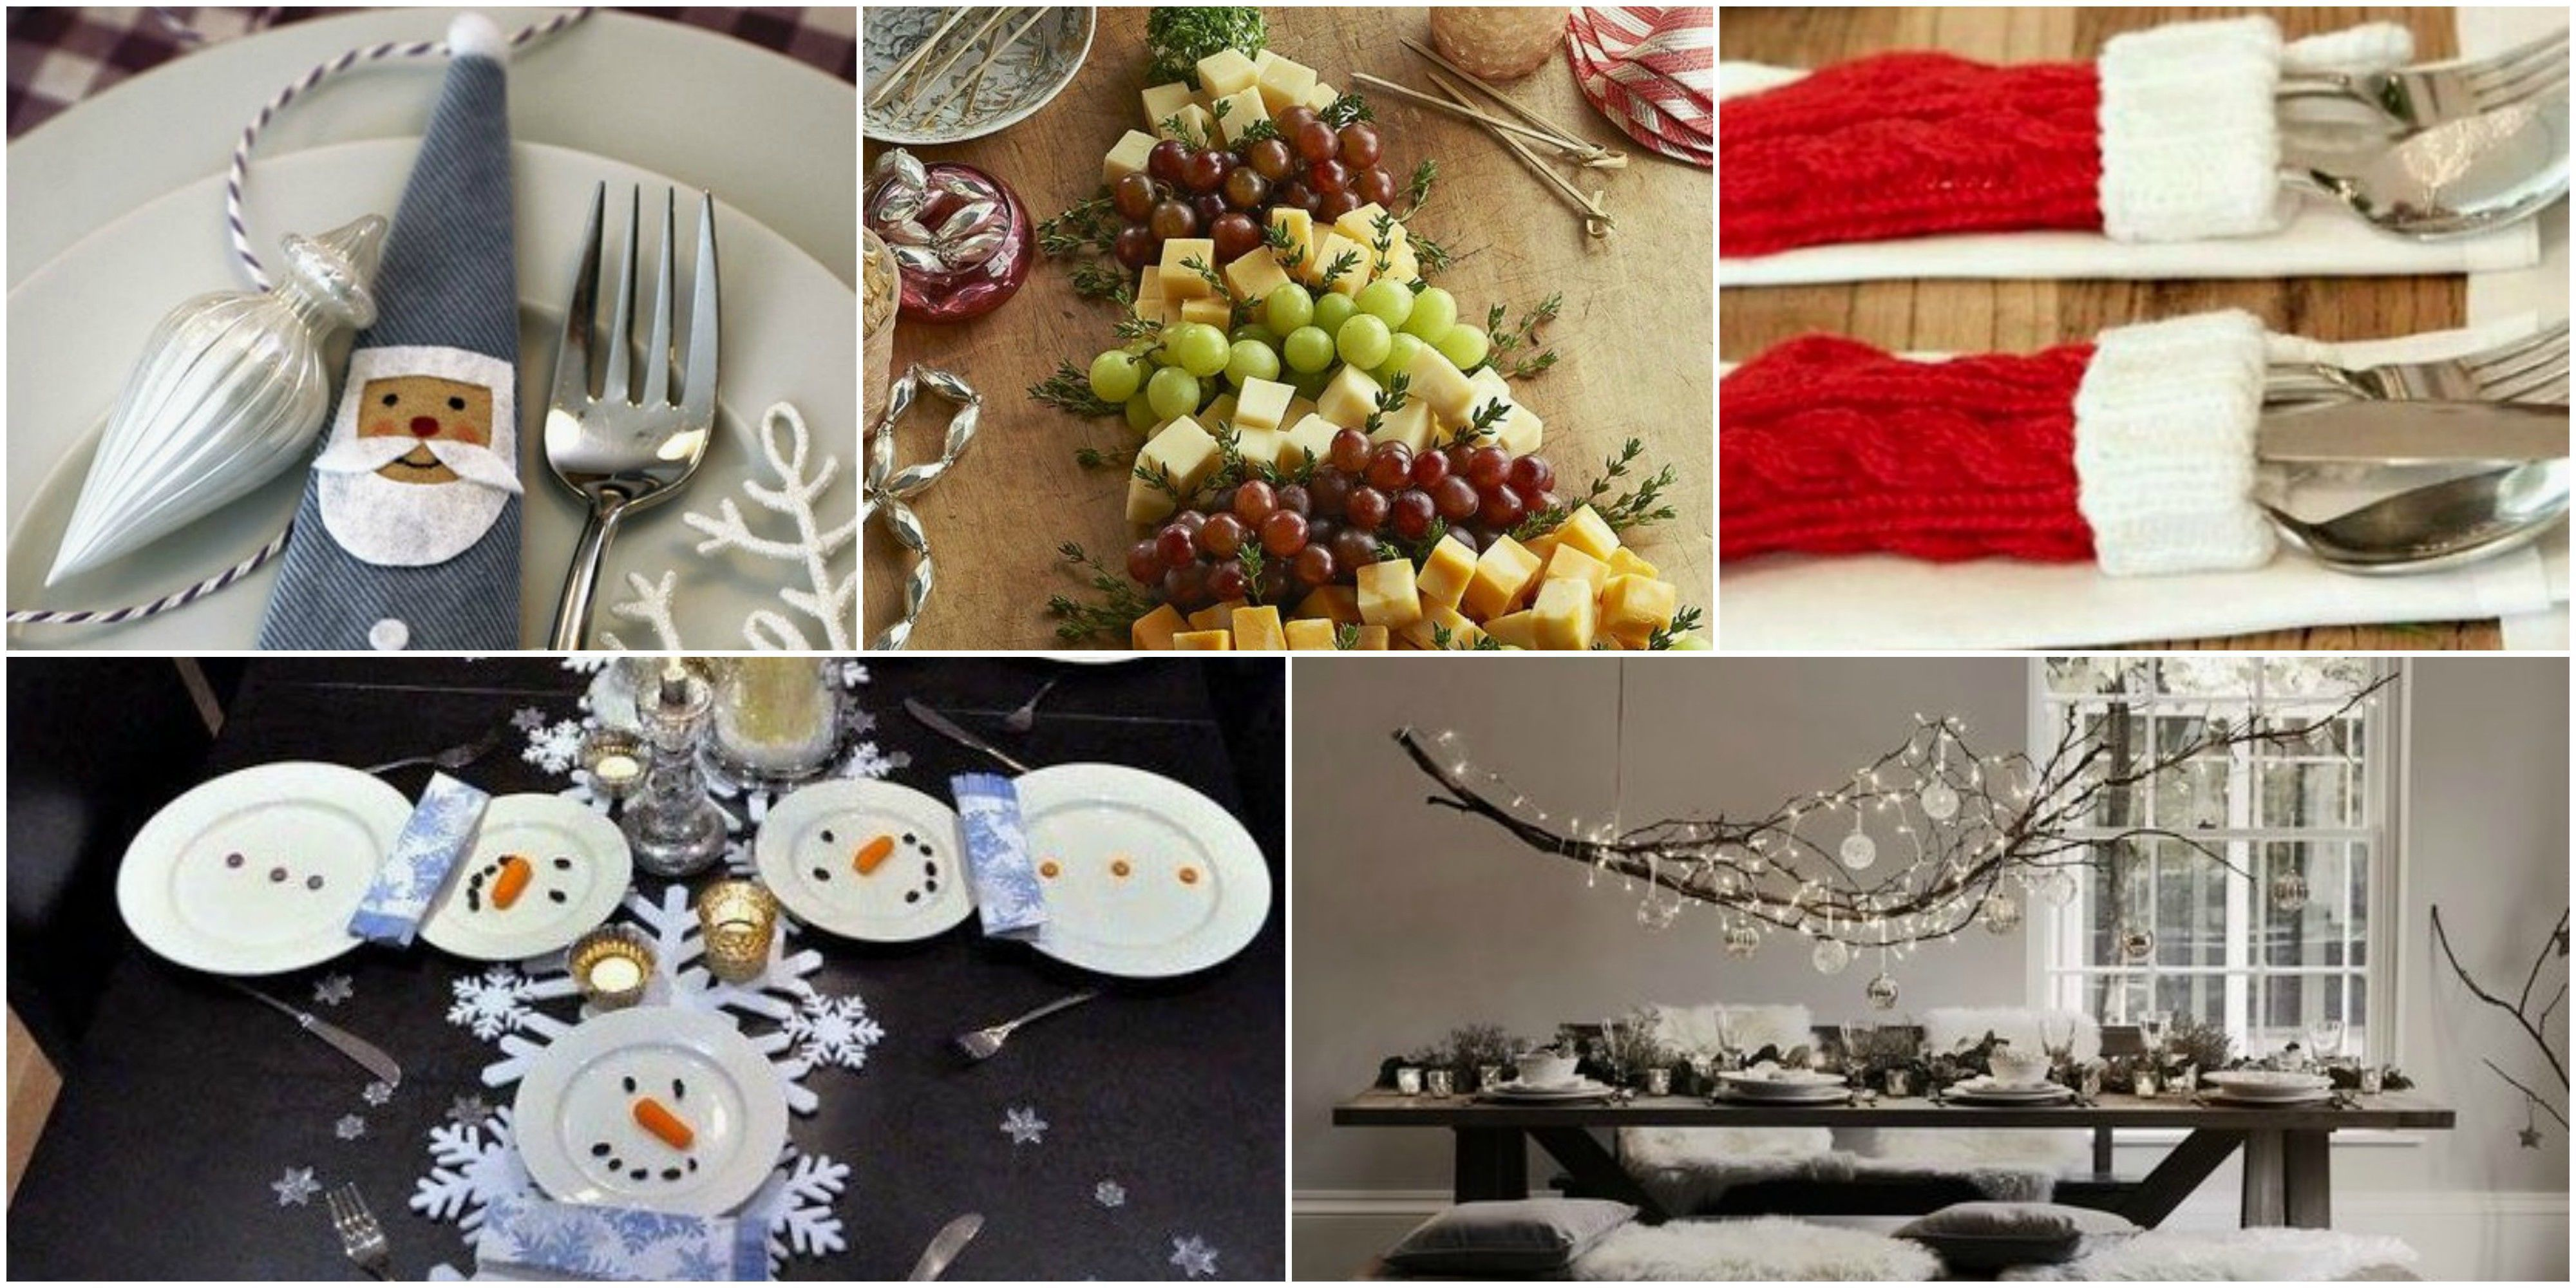 15 Fun And Quirky Christmas Table Setting Ideas